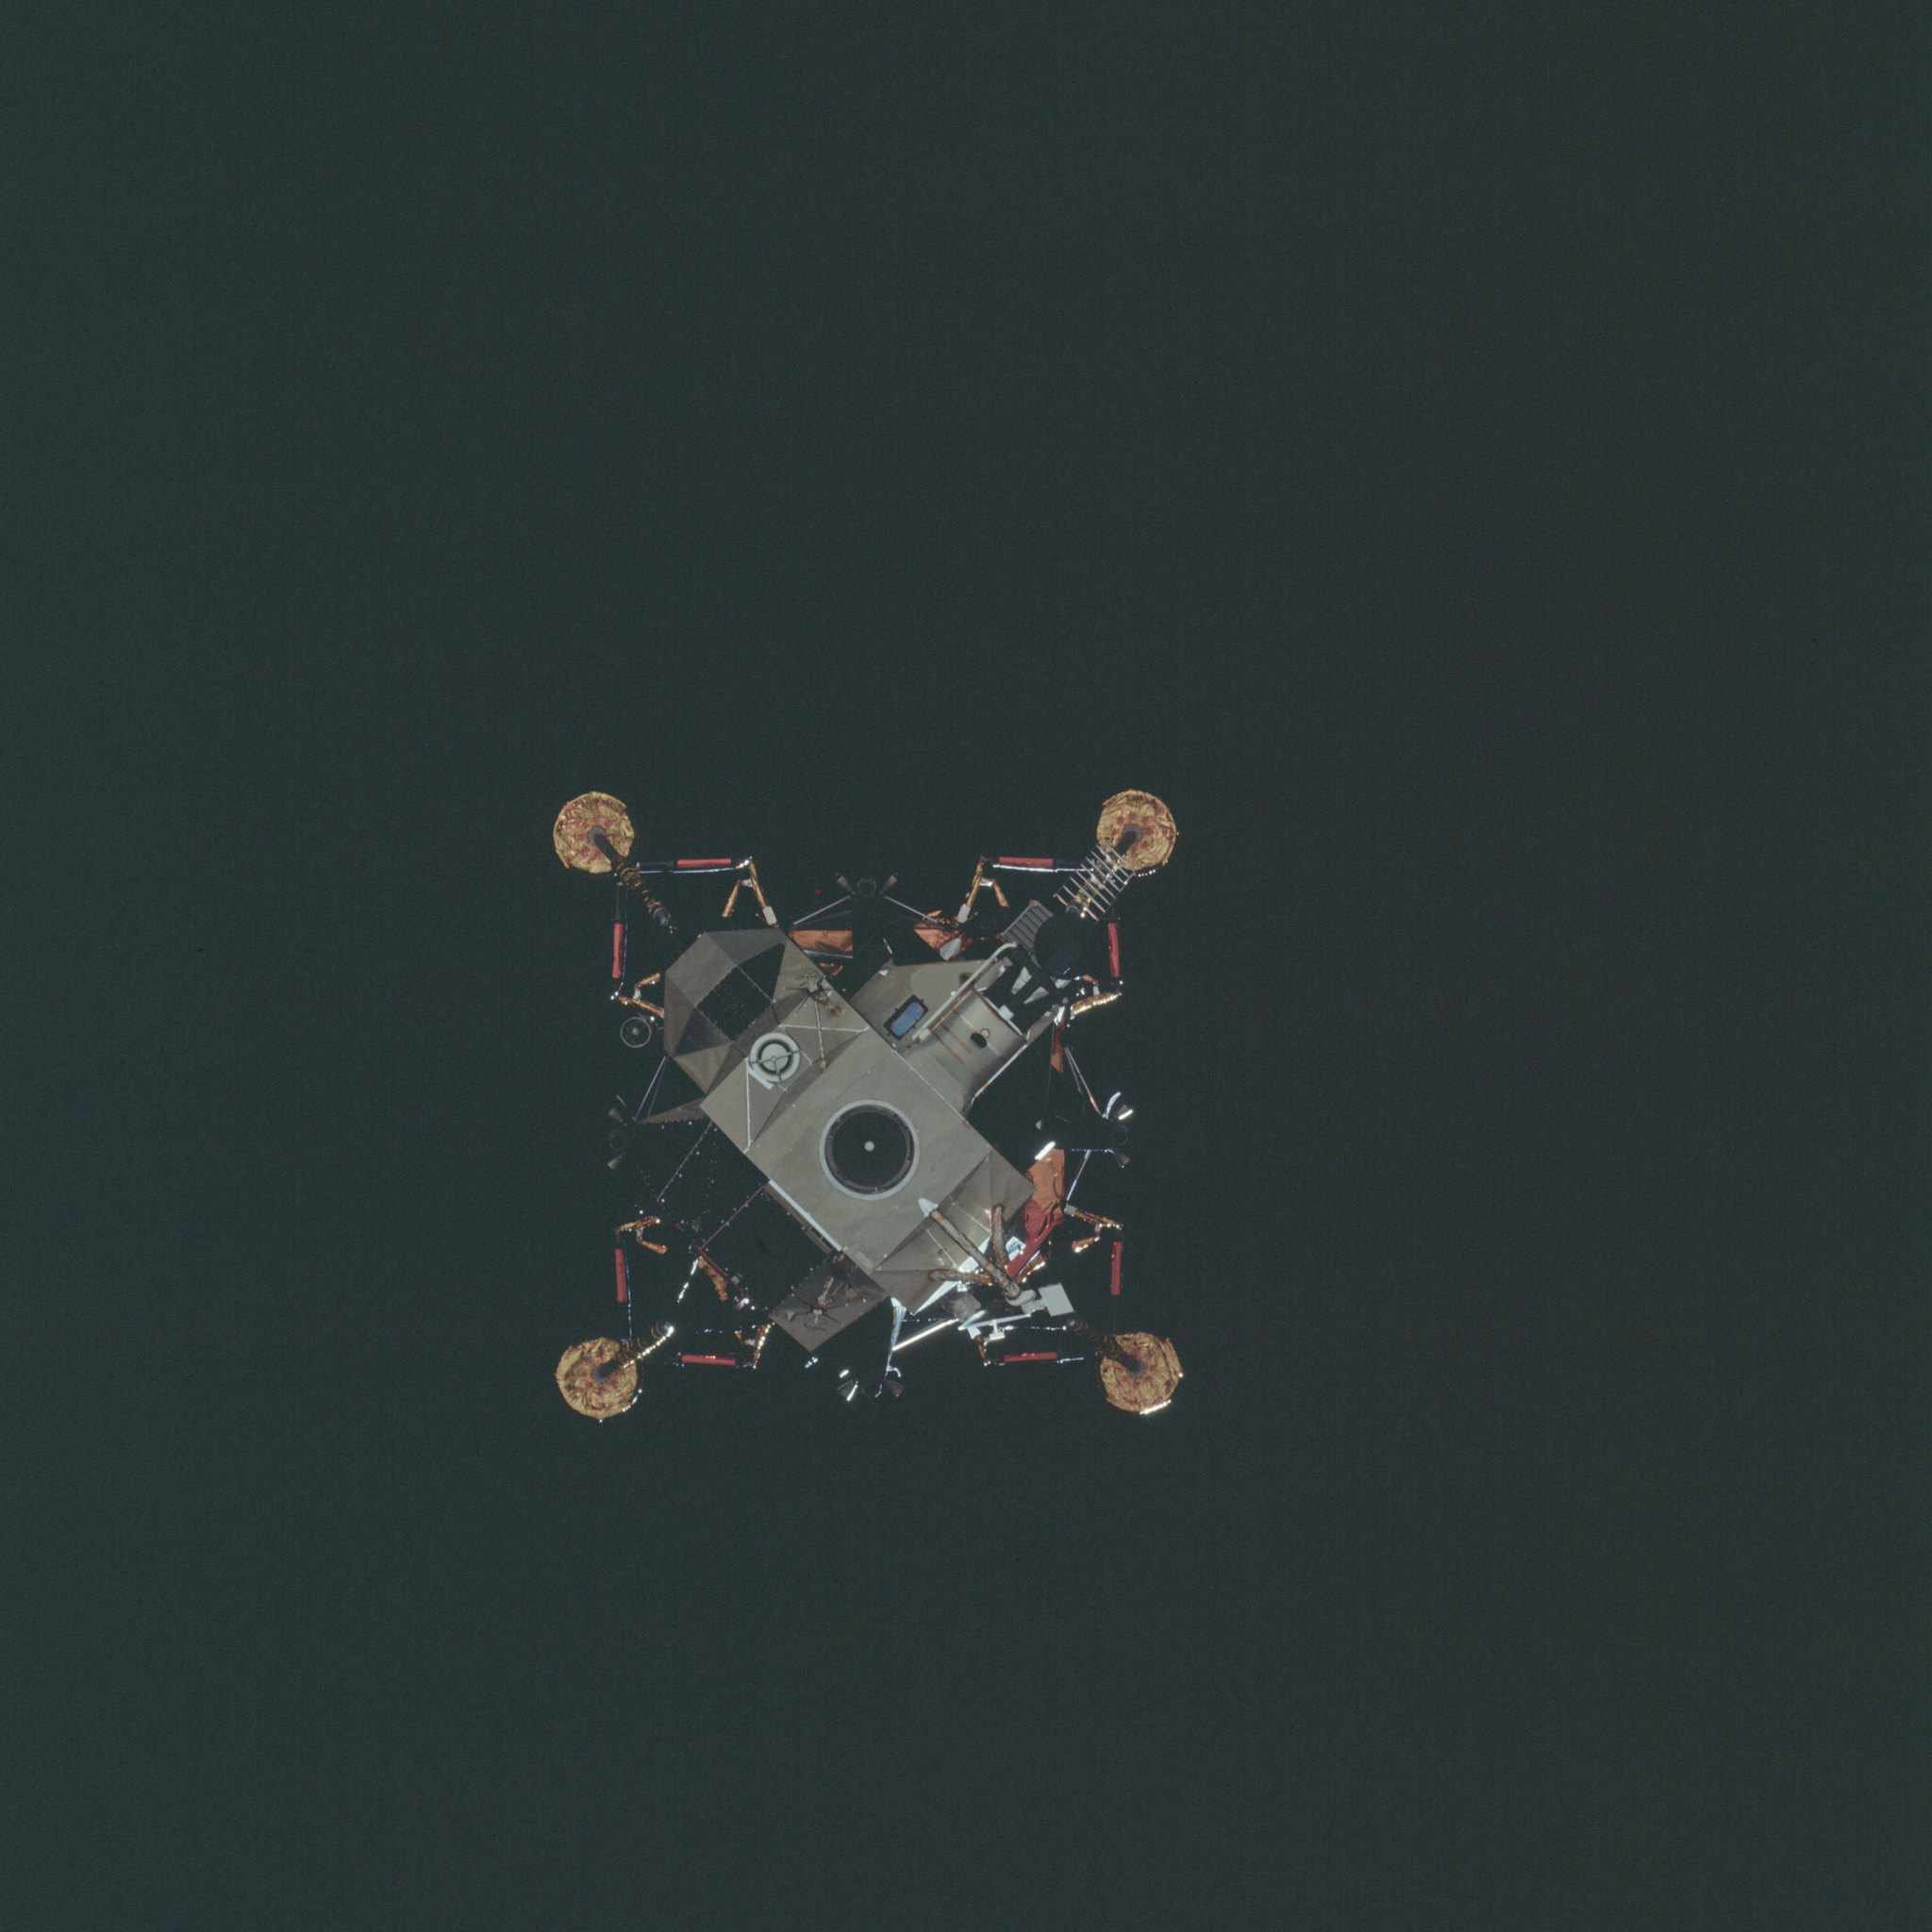 AS14-74-10206 Apollo 14 Hasselblad image from film magazine 74/N - LM inspection